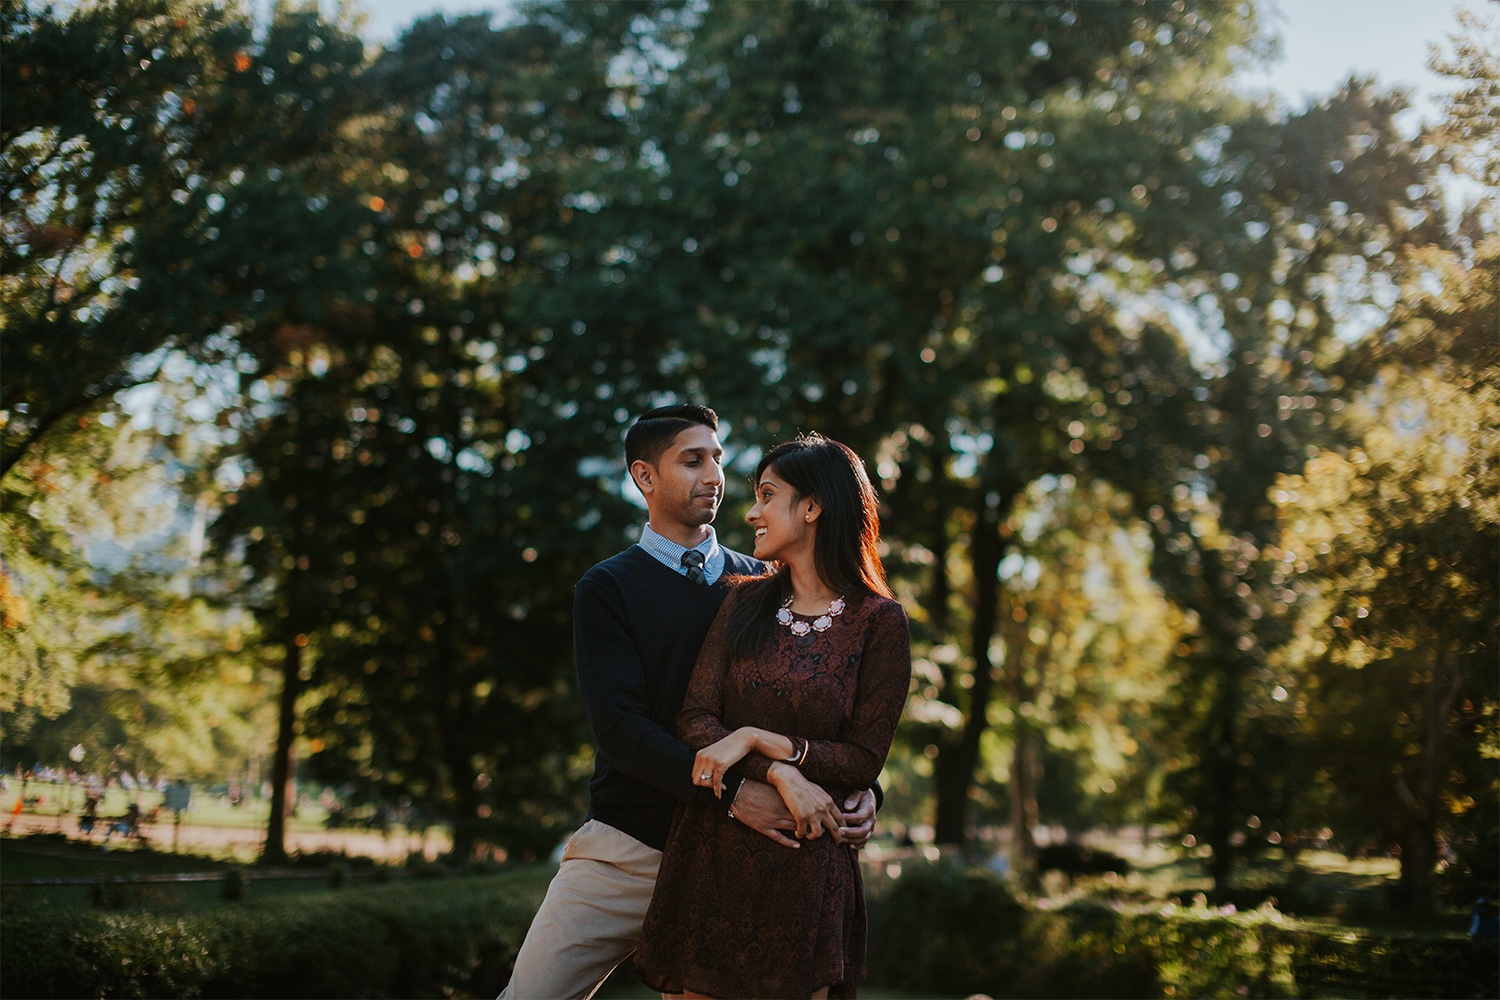 South_Asian_Wedding_Photography_Engagement_Session_004.jpg